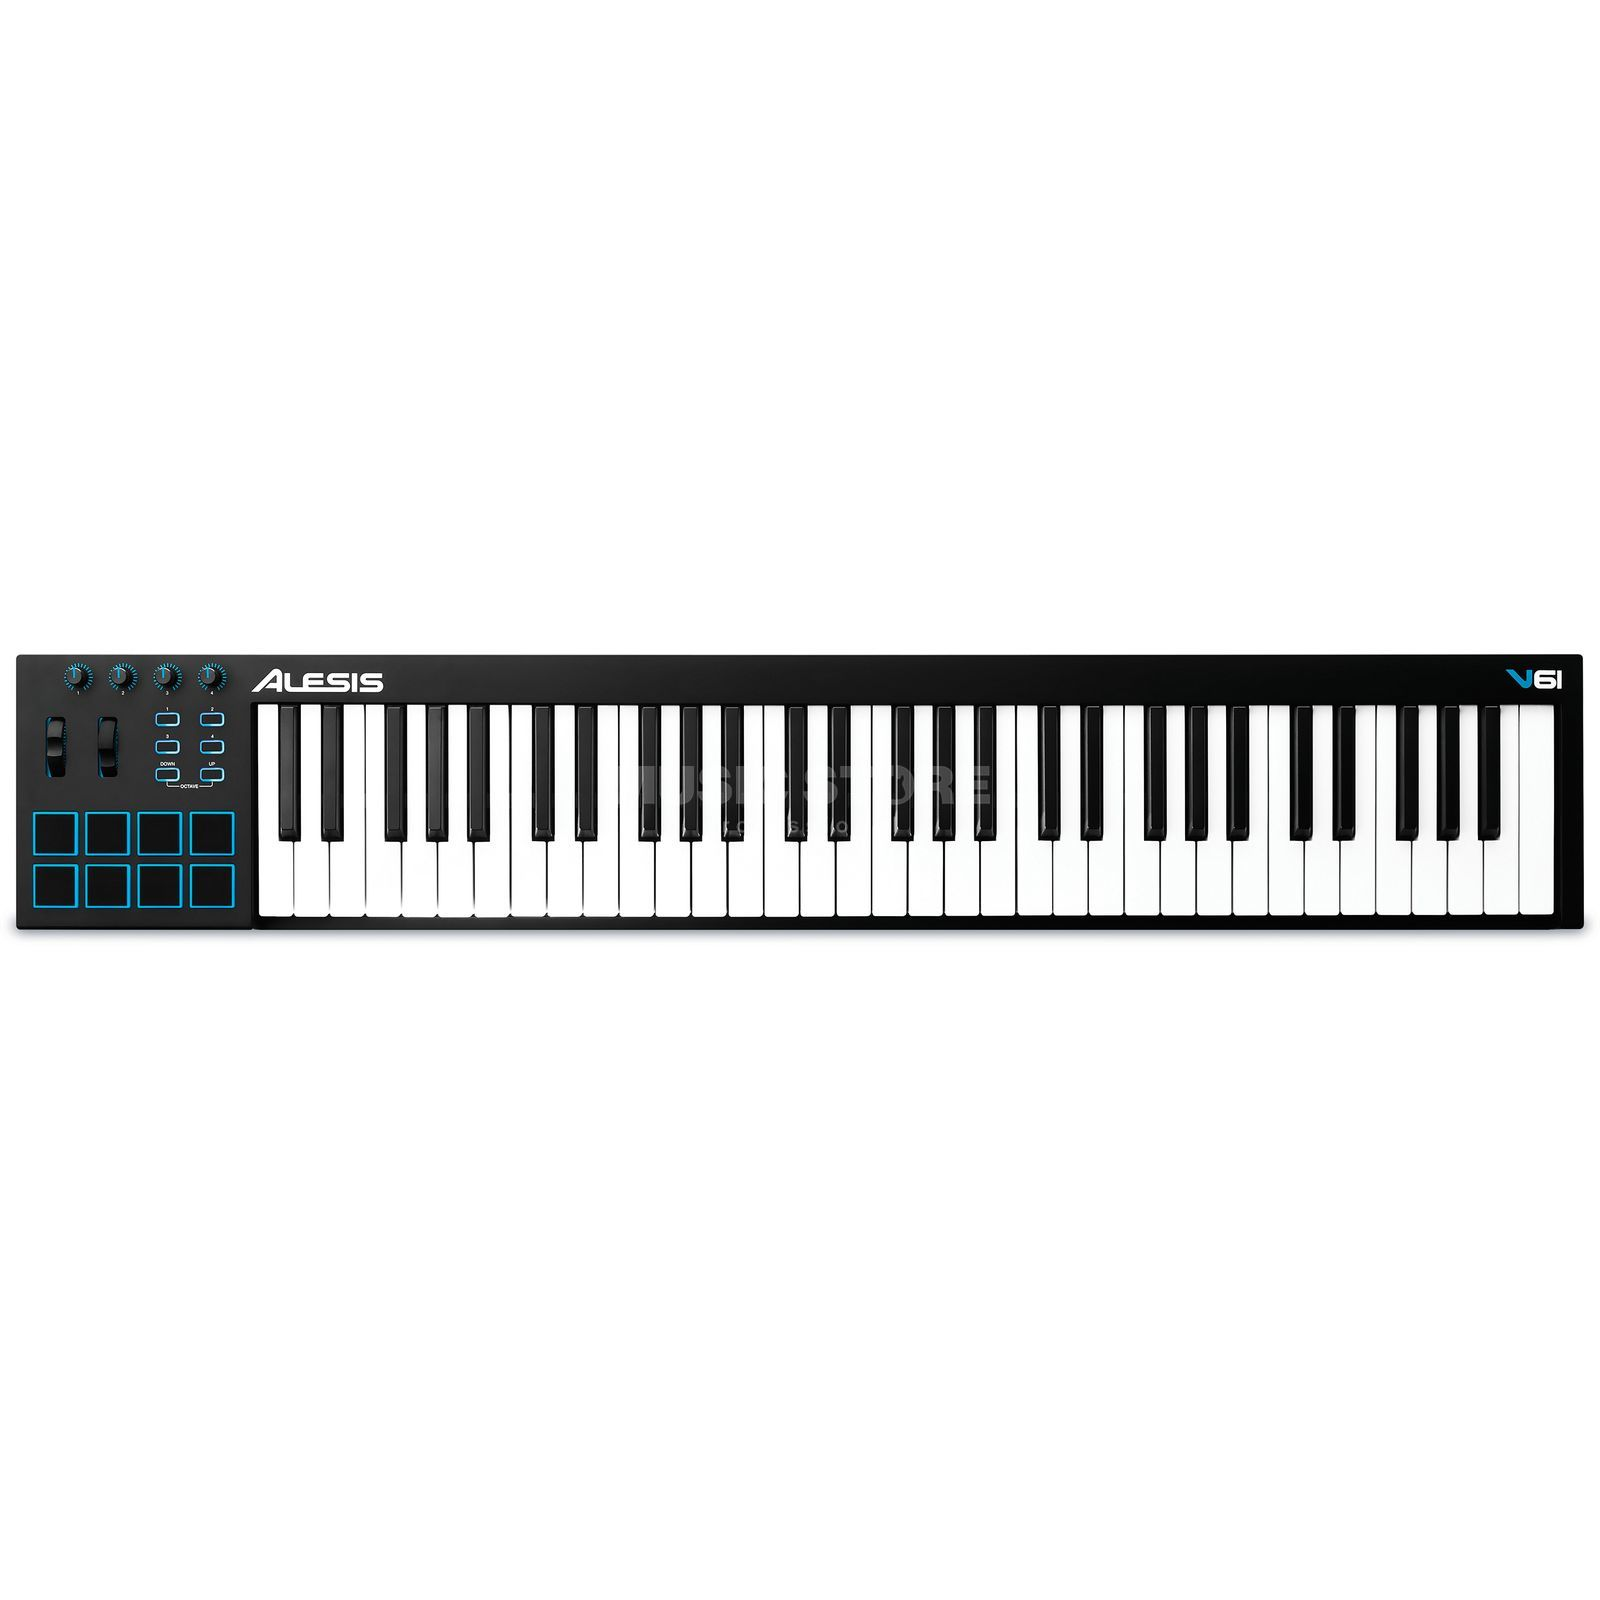 Alesis V 61 USB Controller Keyboard Product Image